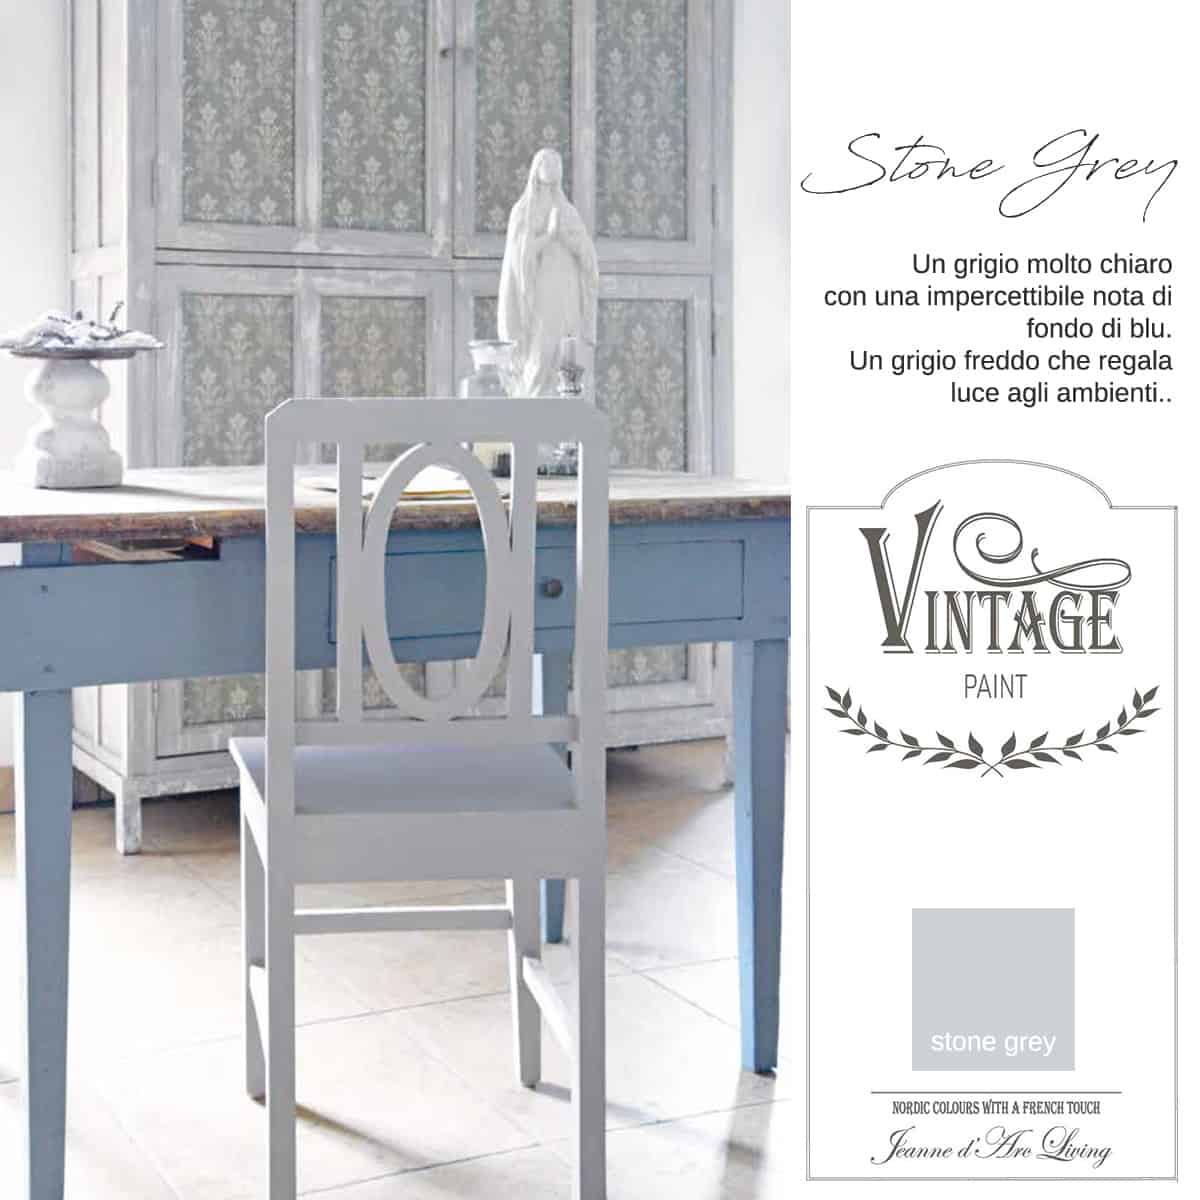 stone grey grigio vintage chalk paint vernici shabby chic autentico look gesso